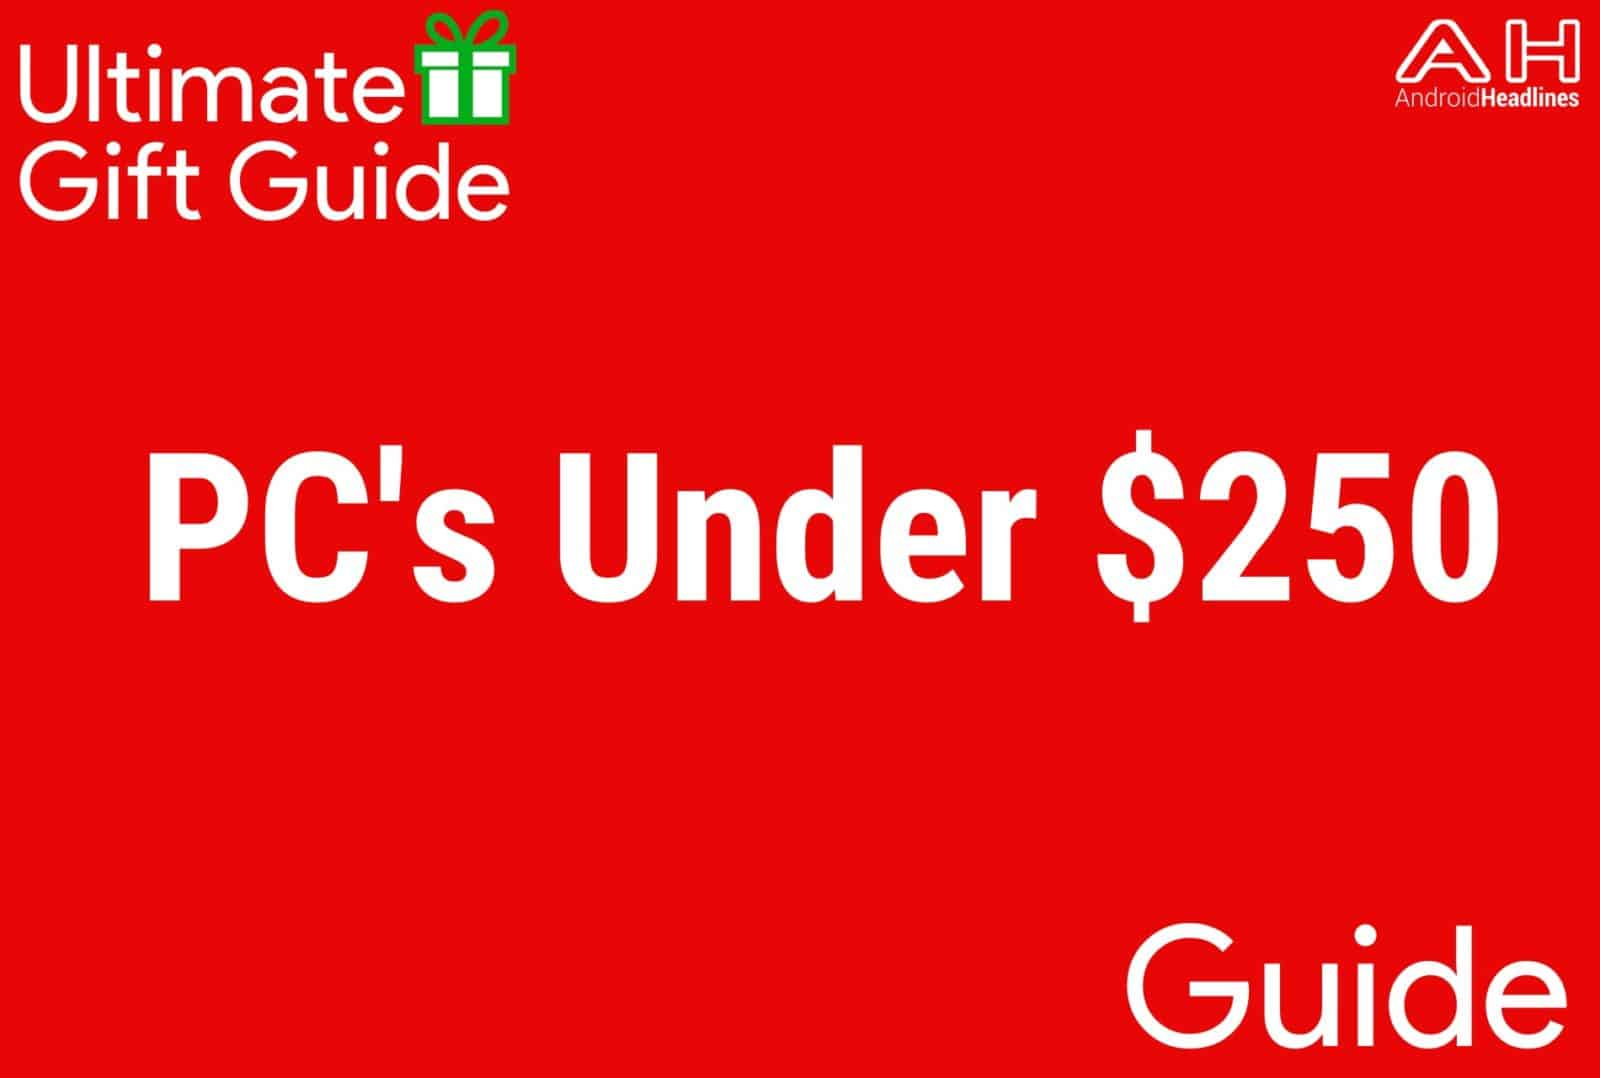 PC's Under $250 - Gift Guide